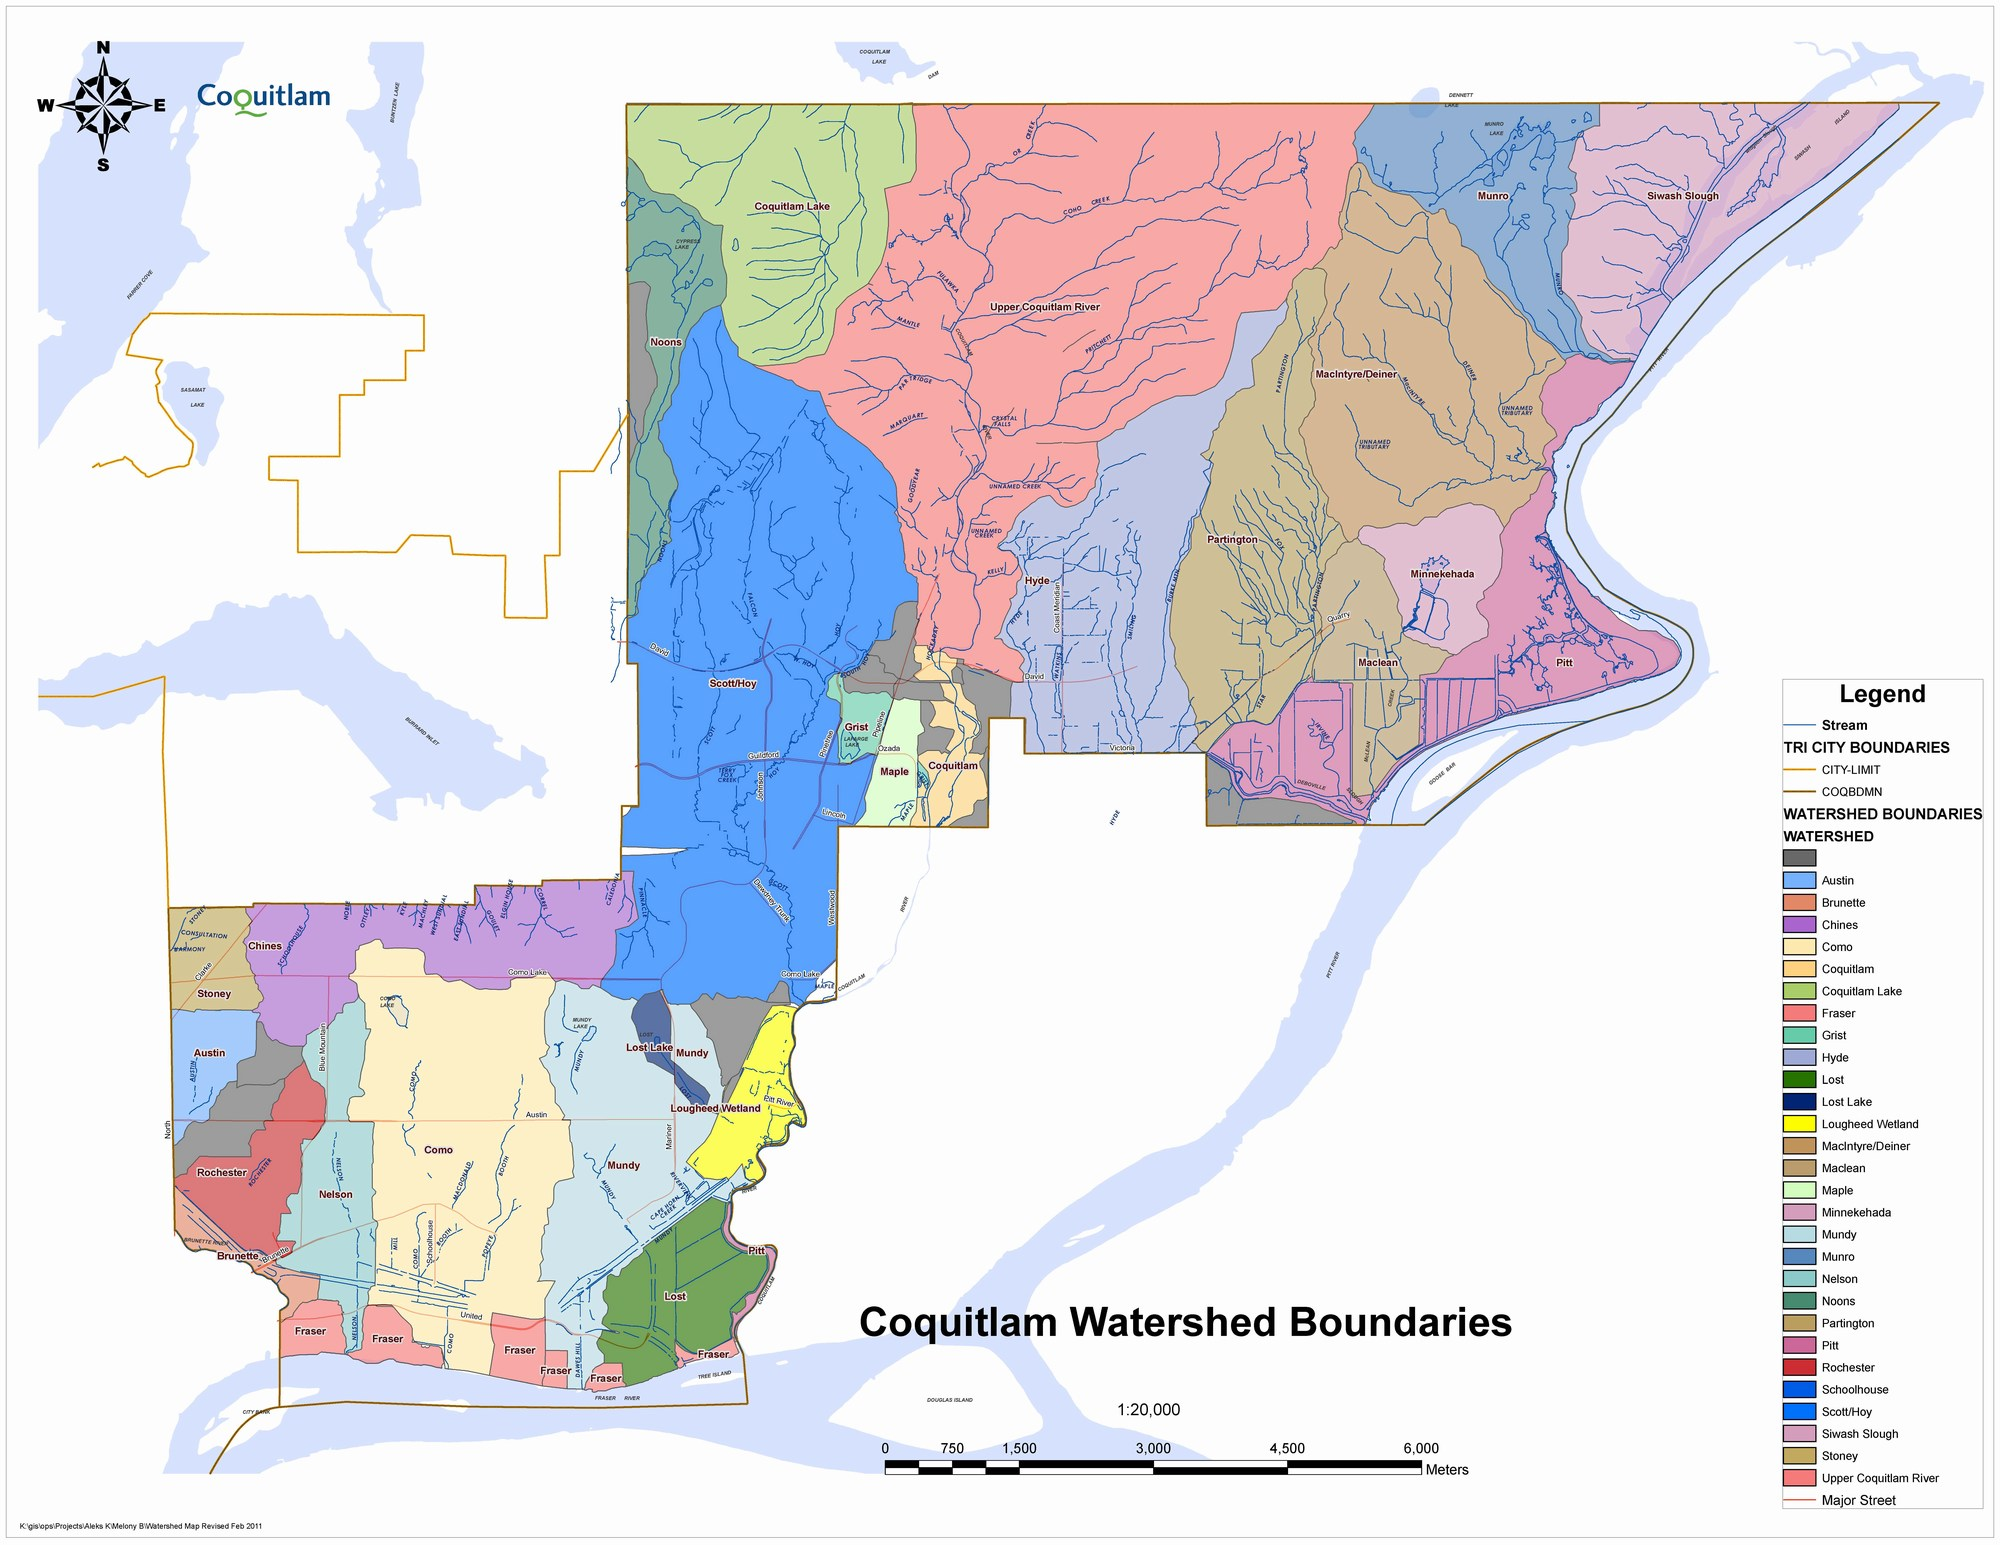 Coquitlam_Watershed_Boundaries_2012_2000p